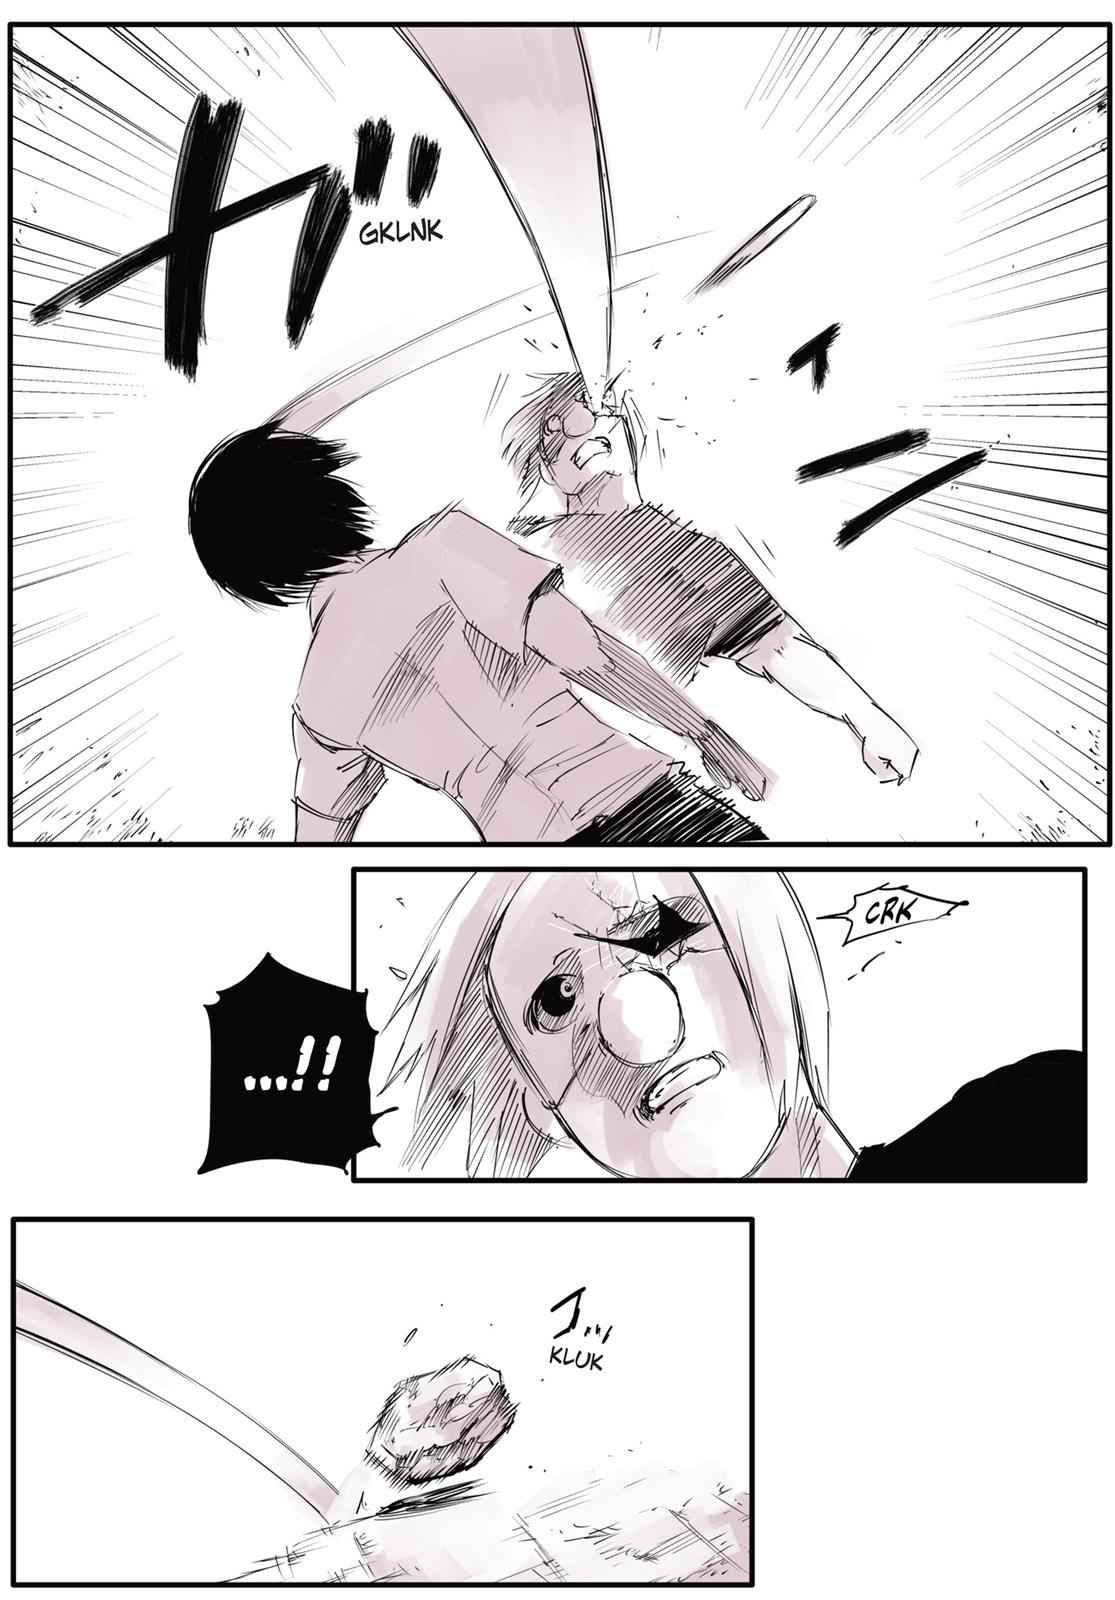 Tokyo Ghoul - Jack Chapter 5 Page 13